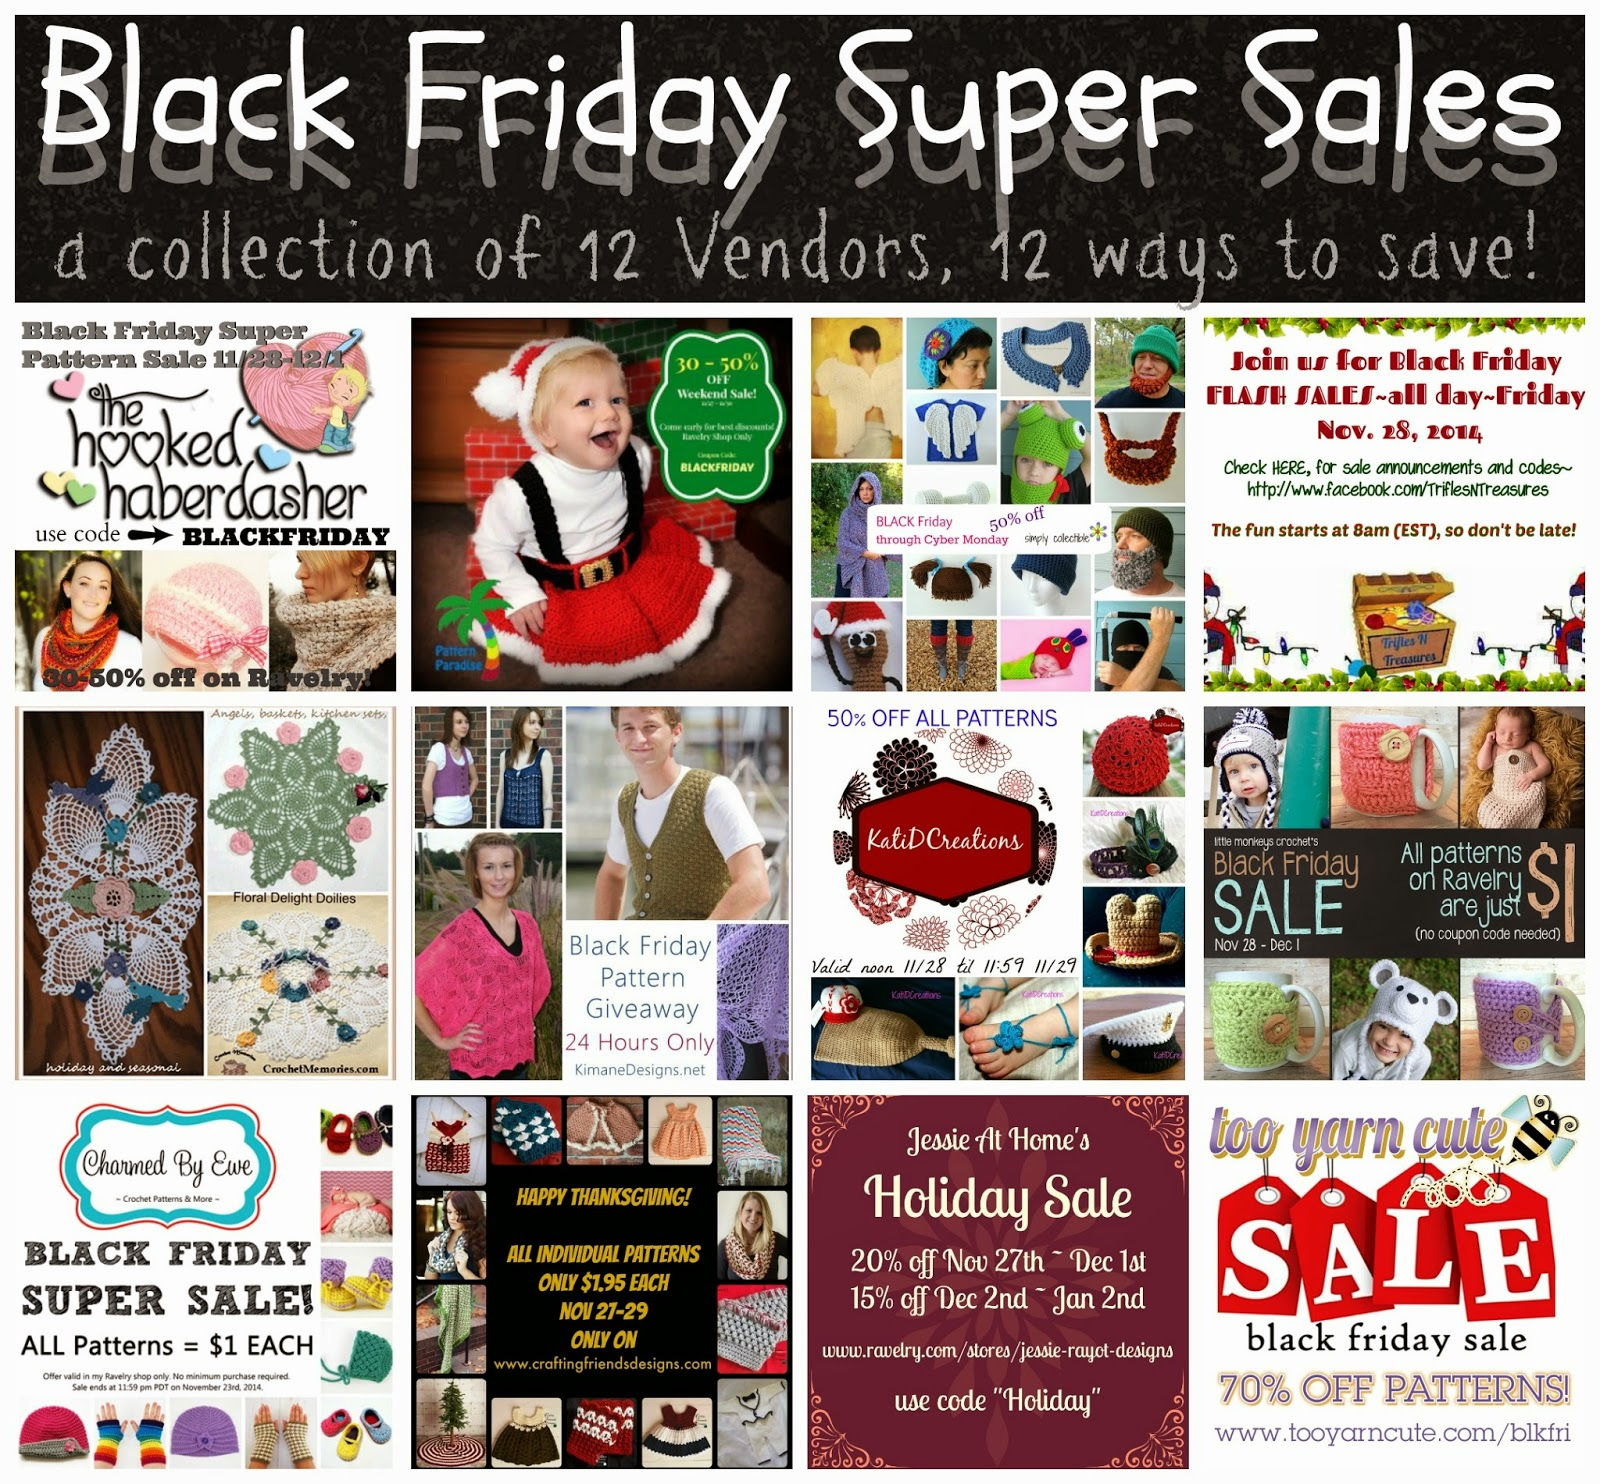 Click here for the 12 vendor collection given on The Hooked Haberdasher.com/2014/11/24/black-friday-sale-12-vendors-12-ways-to-save-big/